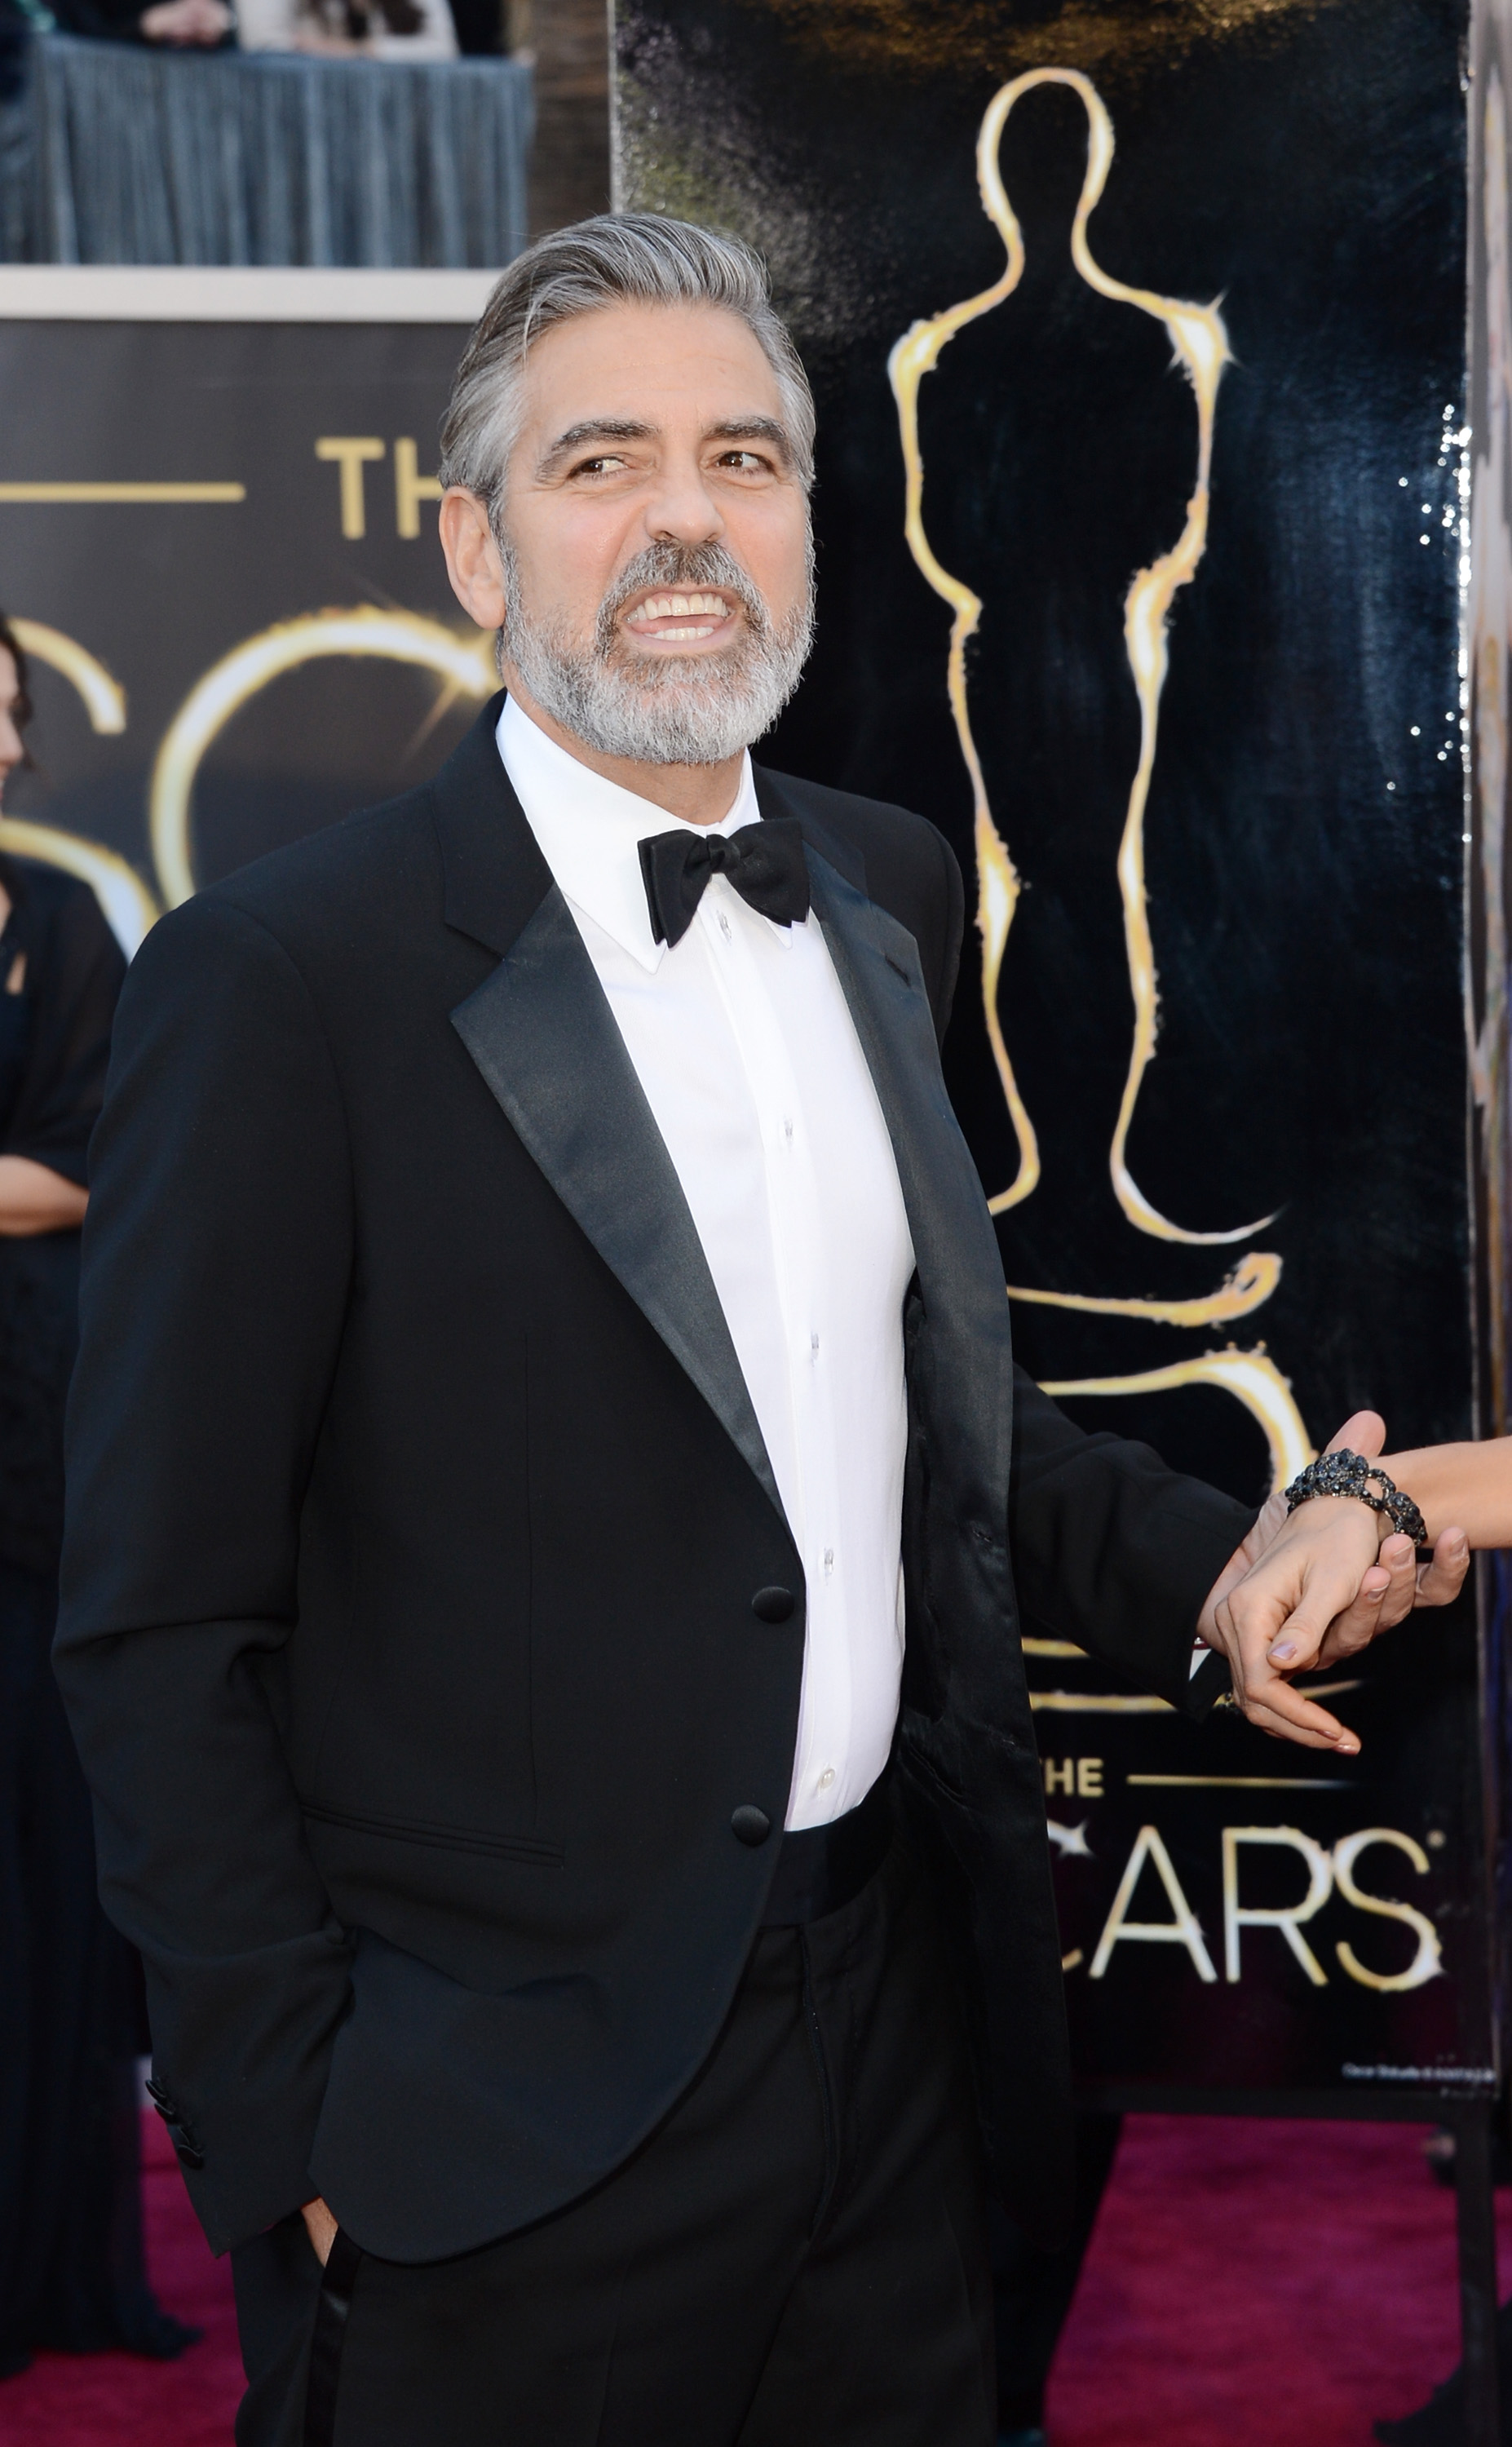 George Clooney on the red carpet at the Oscars 2013.